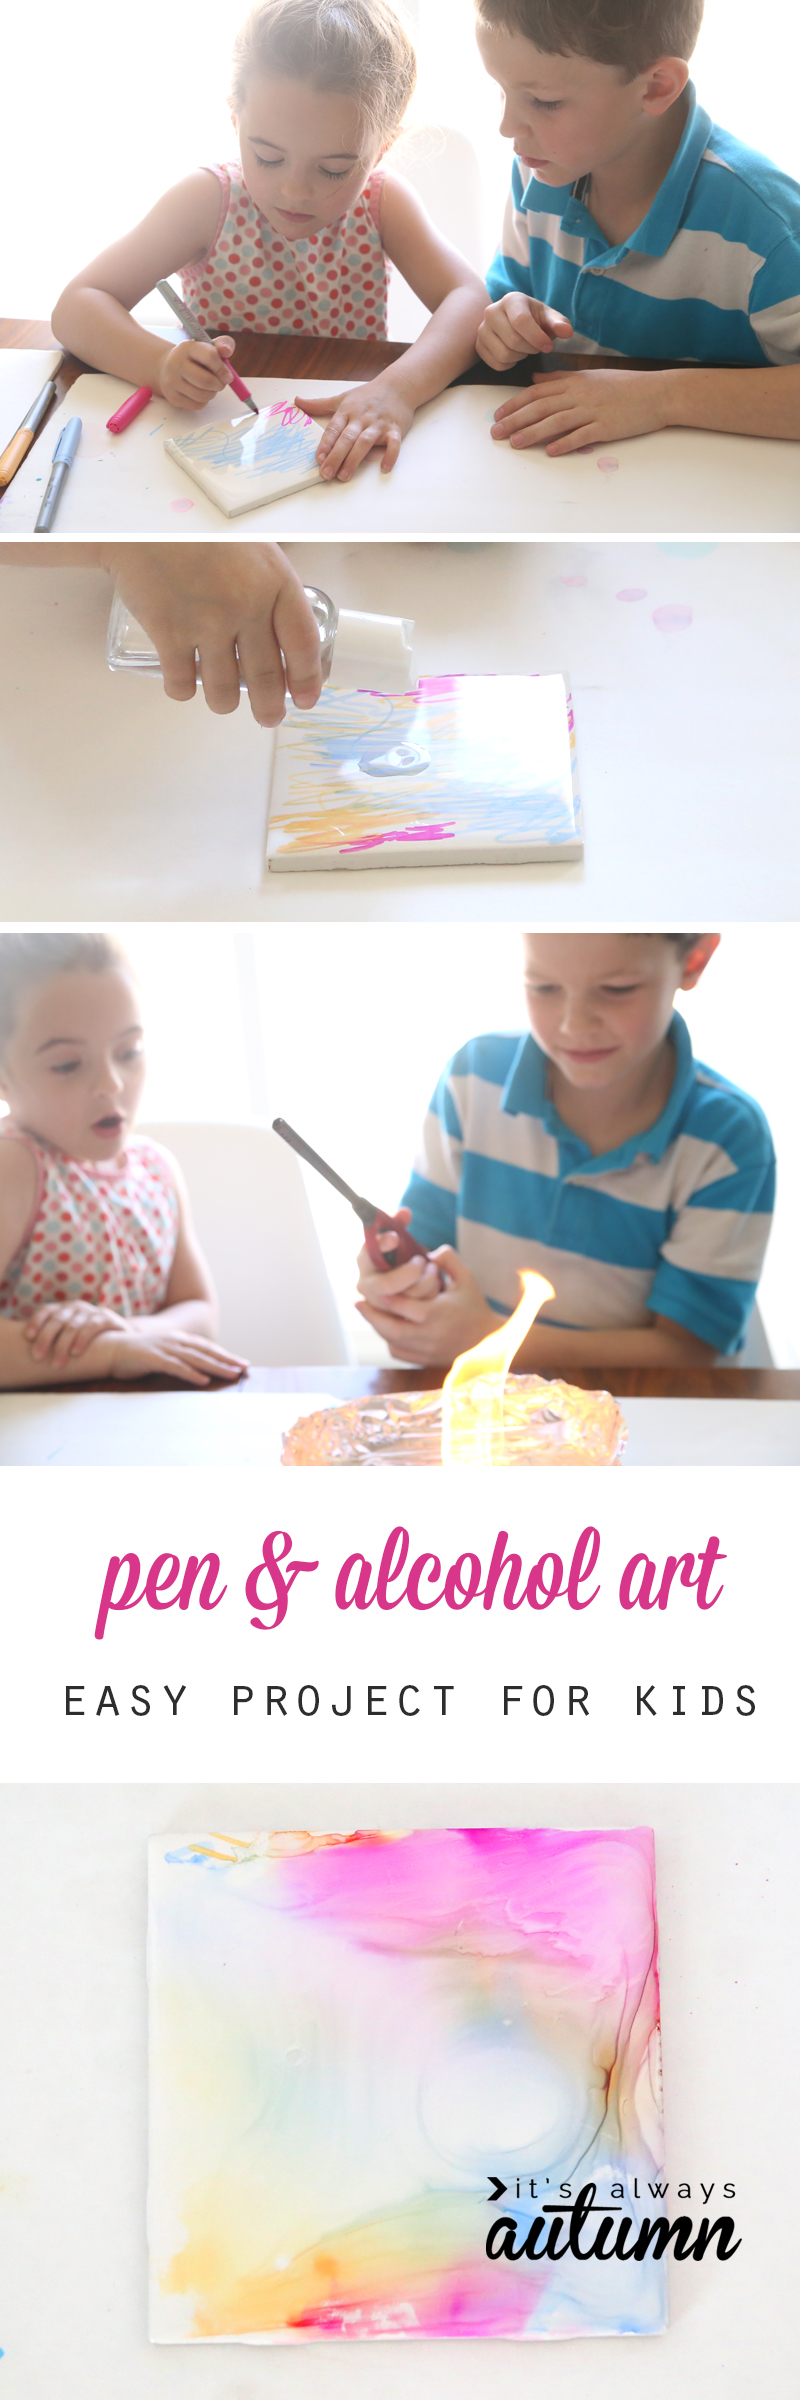 This gorgeous tile art is easy enough for kids to make with just pens, alcohol, tiles, and a lighter. Such a fun activity for kids, and the tiles make beautiful coasters for an easy, cheap handmade mother's day gift!